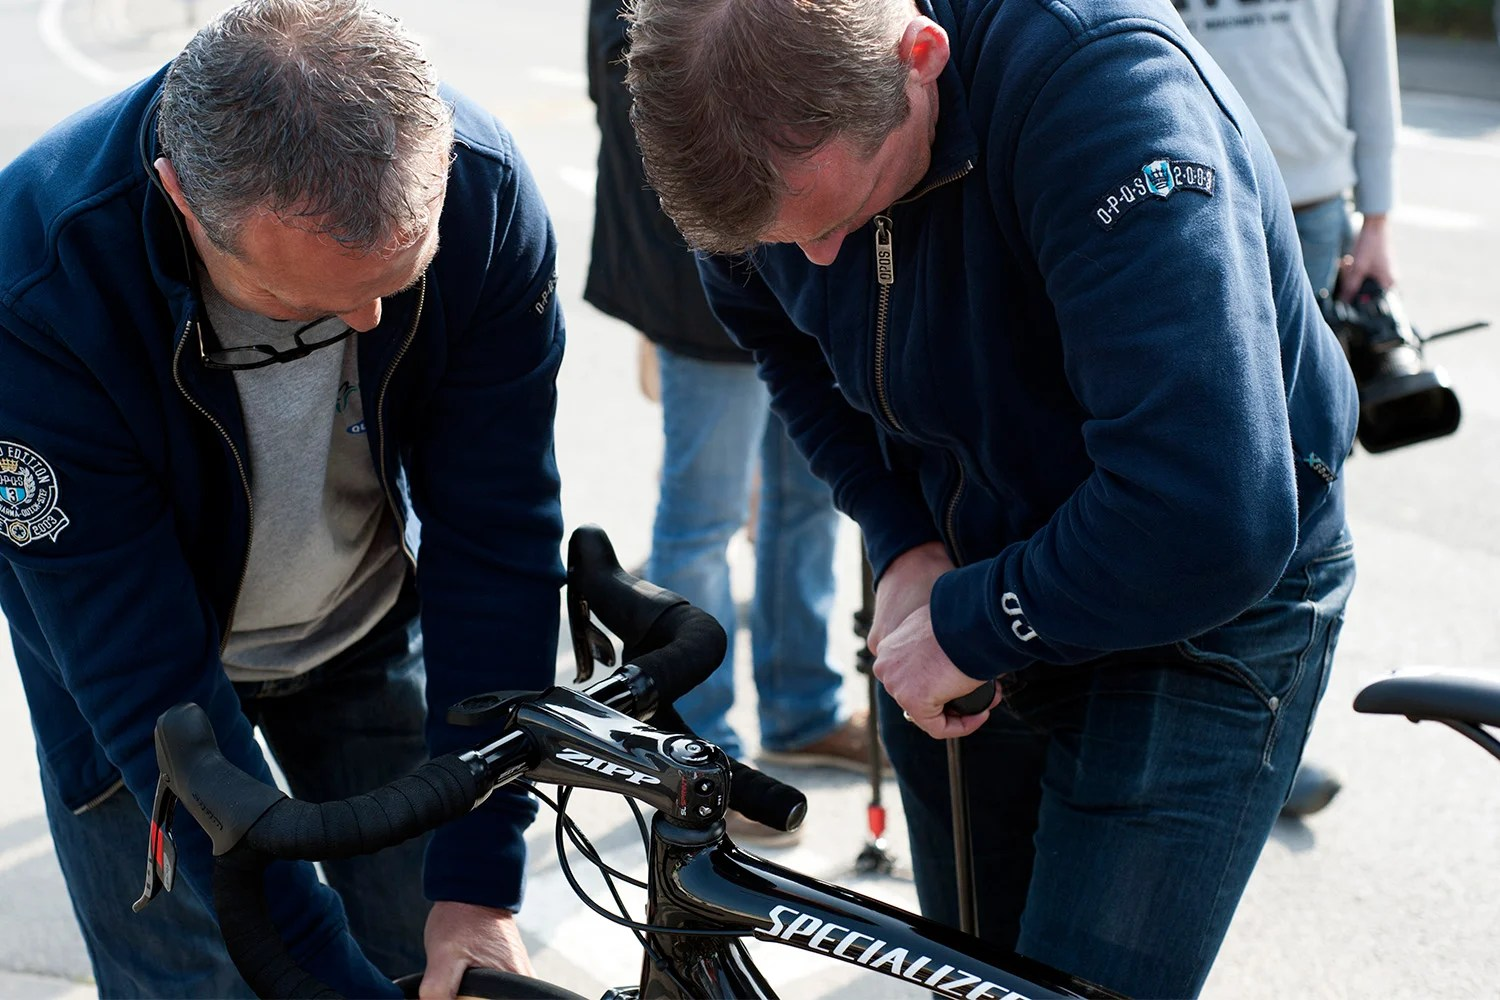 Point P Roubaix Gallery Ride Along With Omega Pharma S Final Paris Roubaix Recon